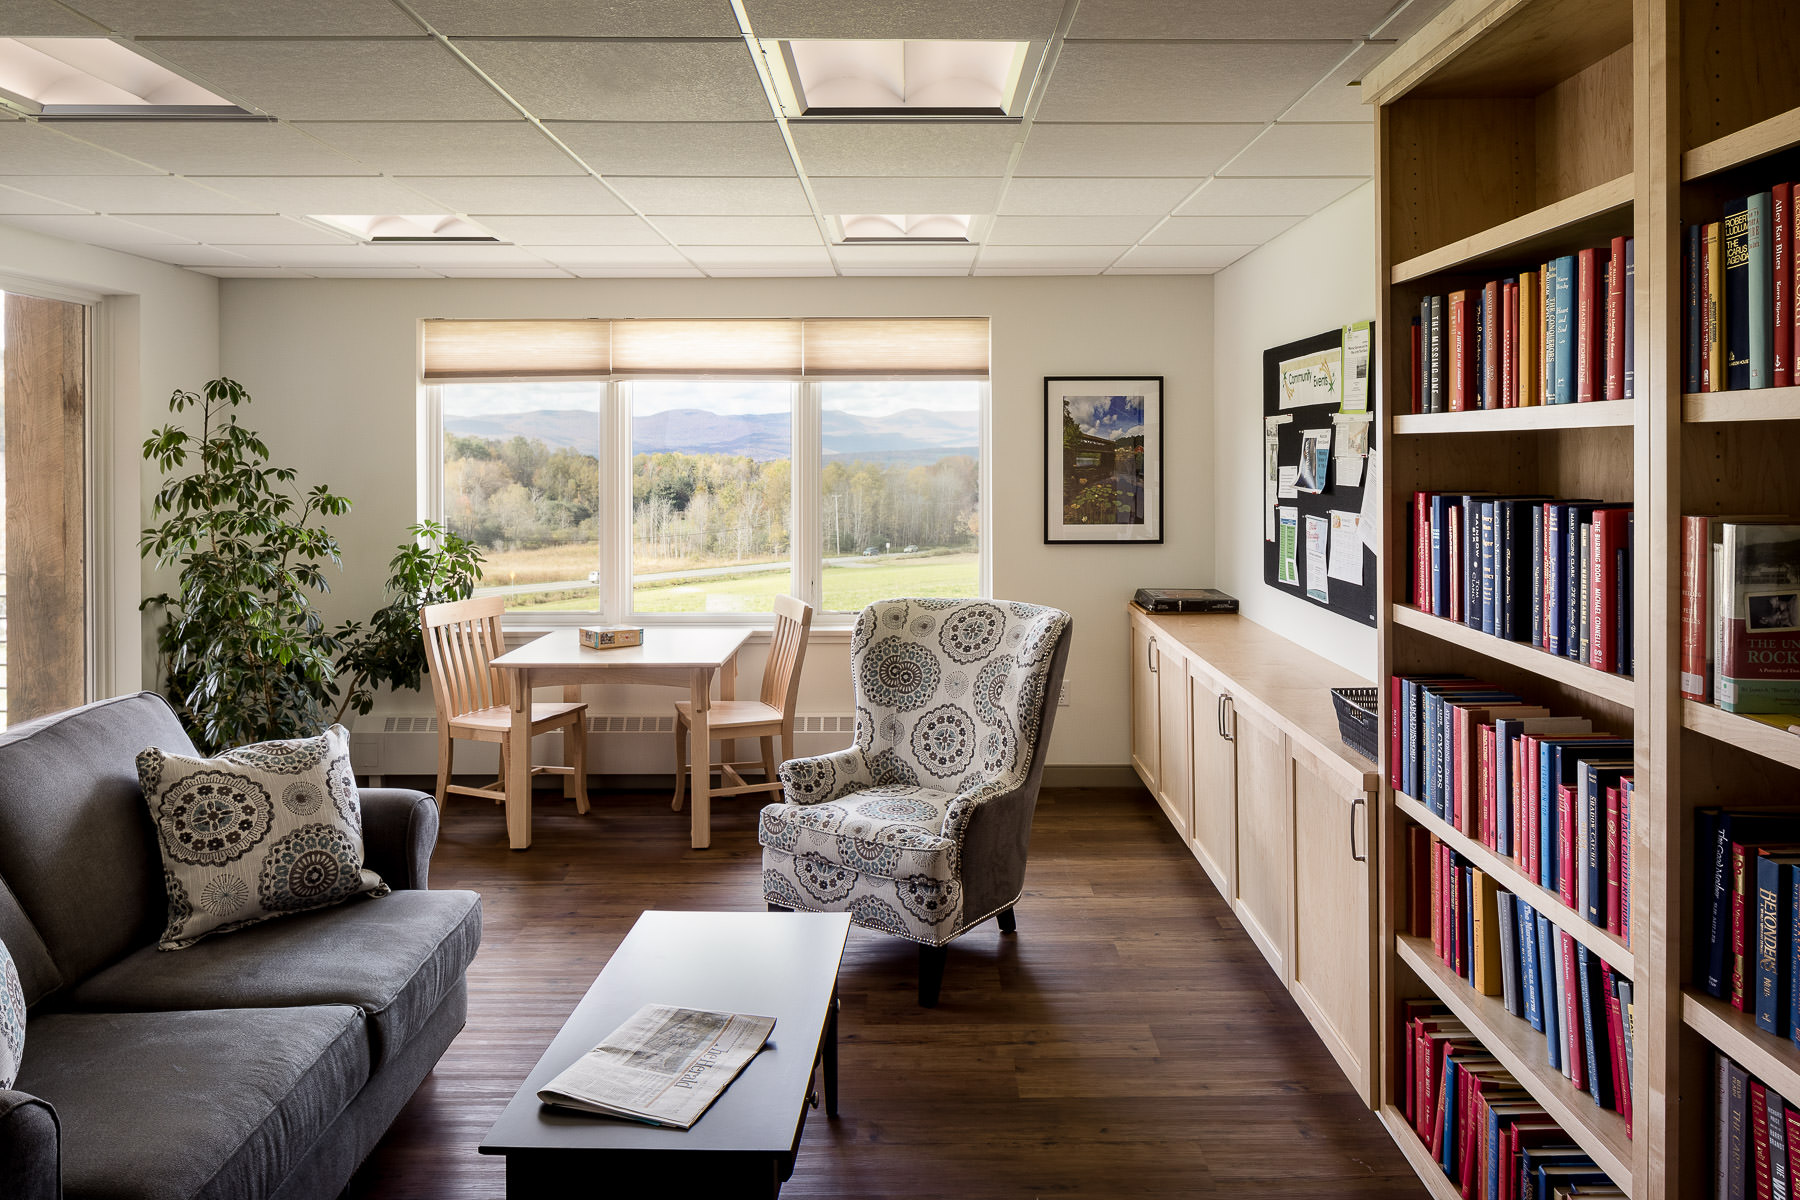 Architectural photo of the community library in the Strode Independent Living Facility in Randolph by Vermont commercial photographer Stina Booth